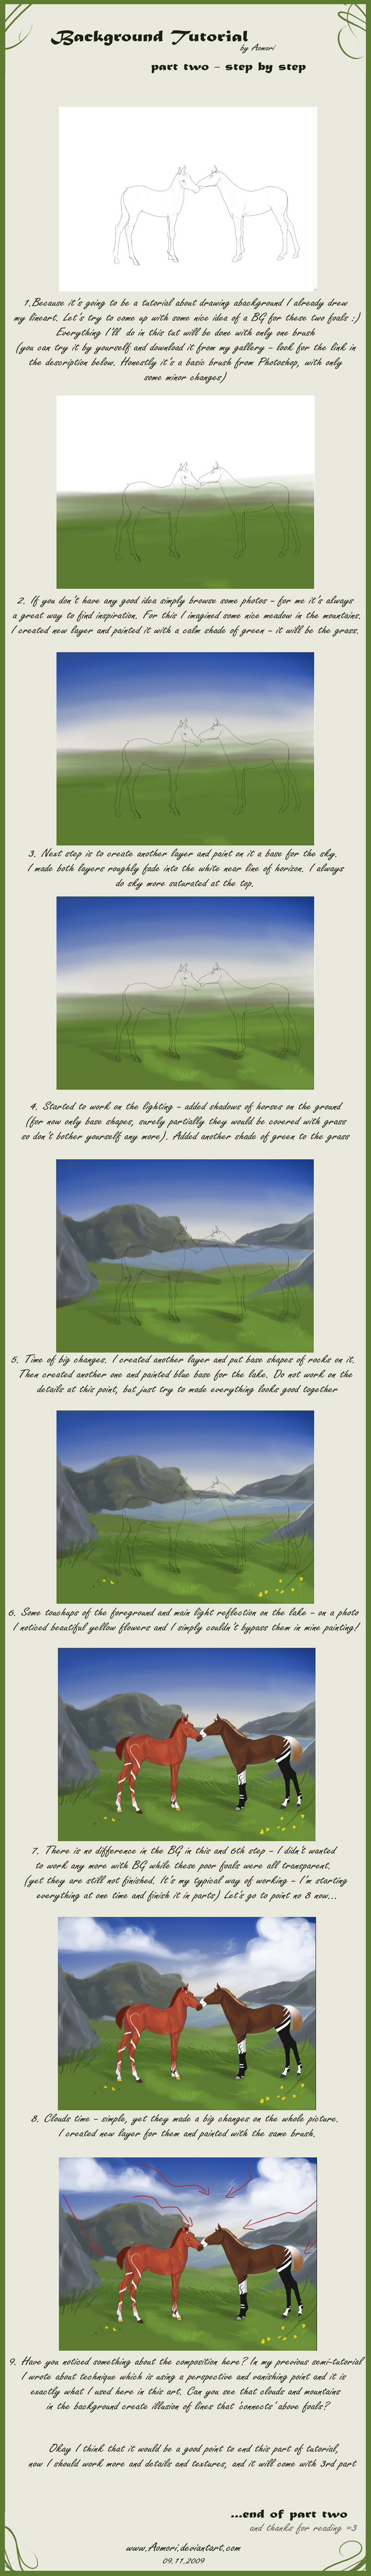 Background tutorial - part 2 by Aomori